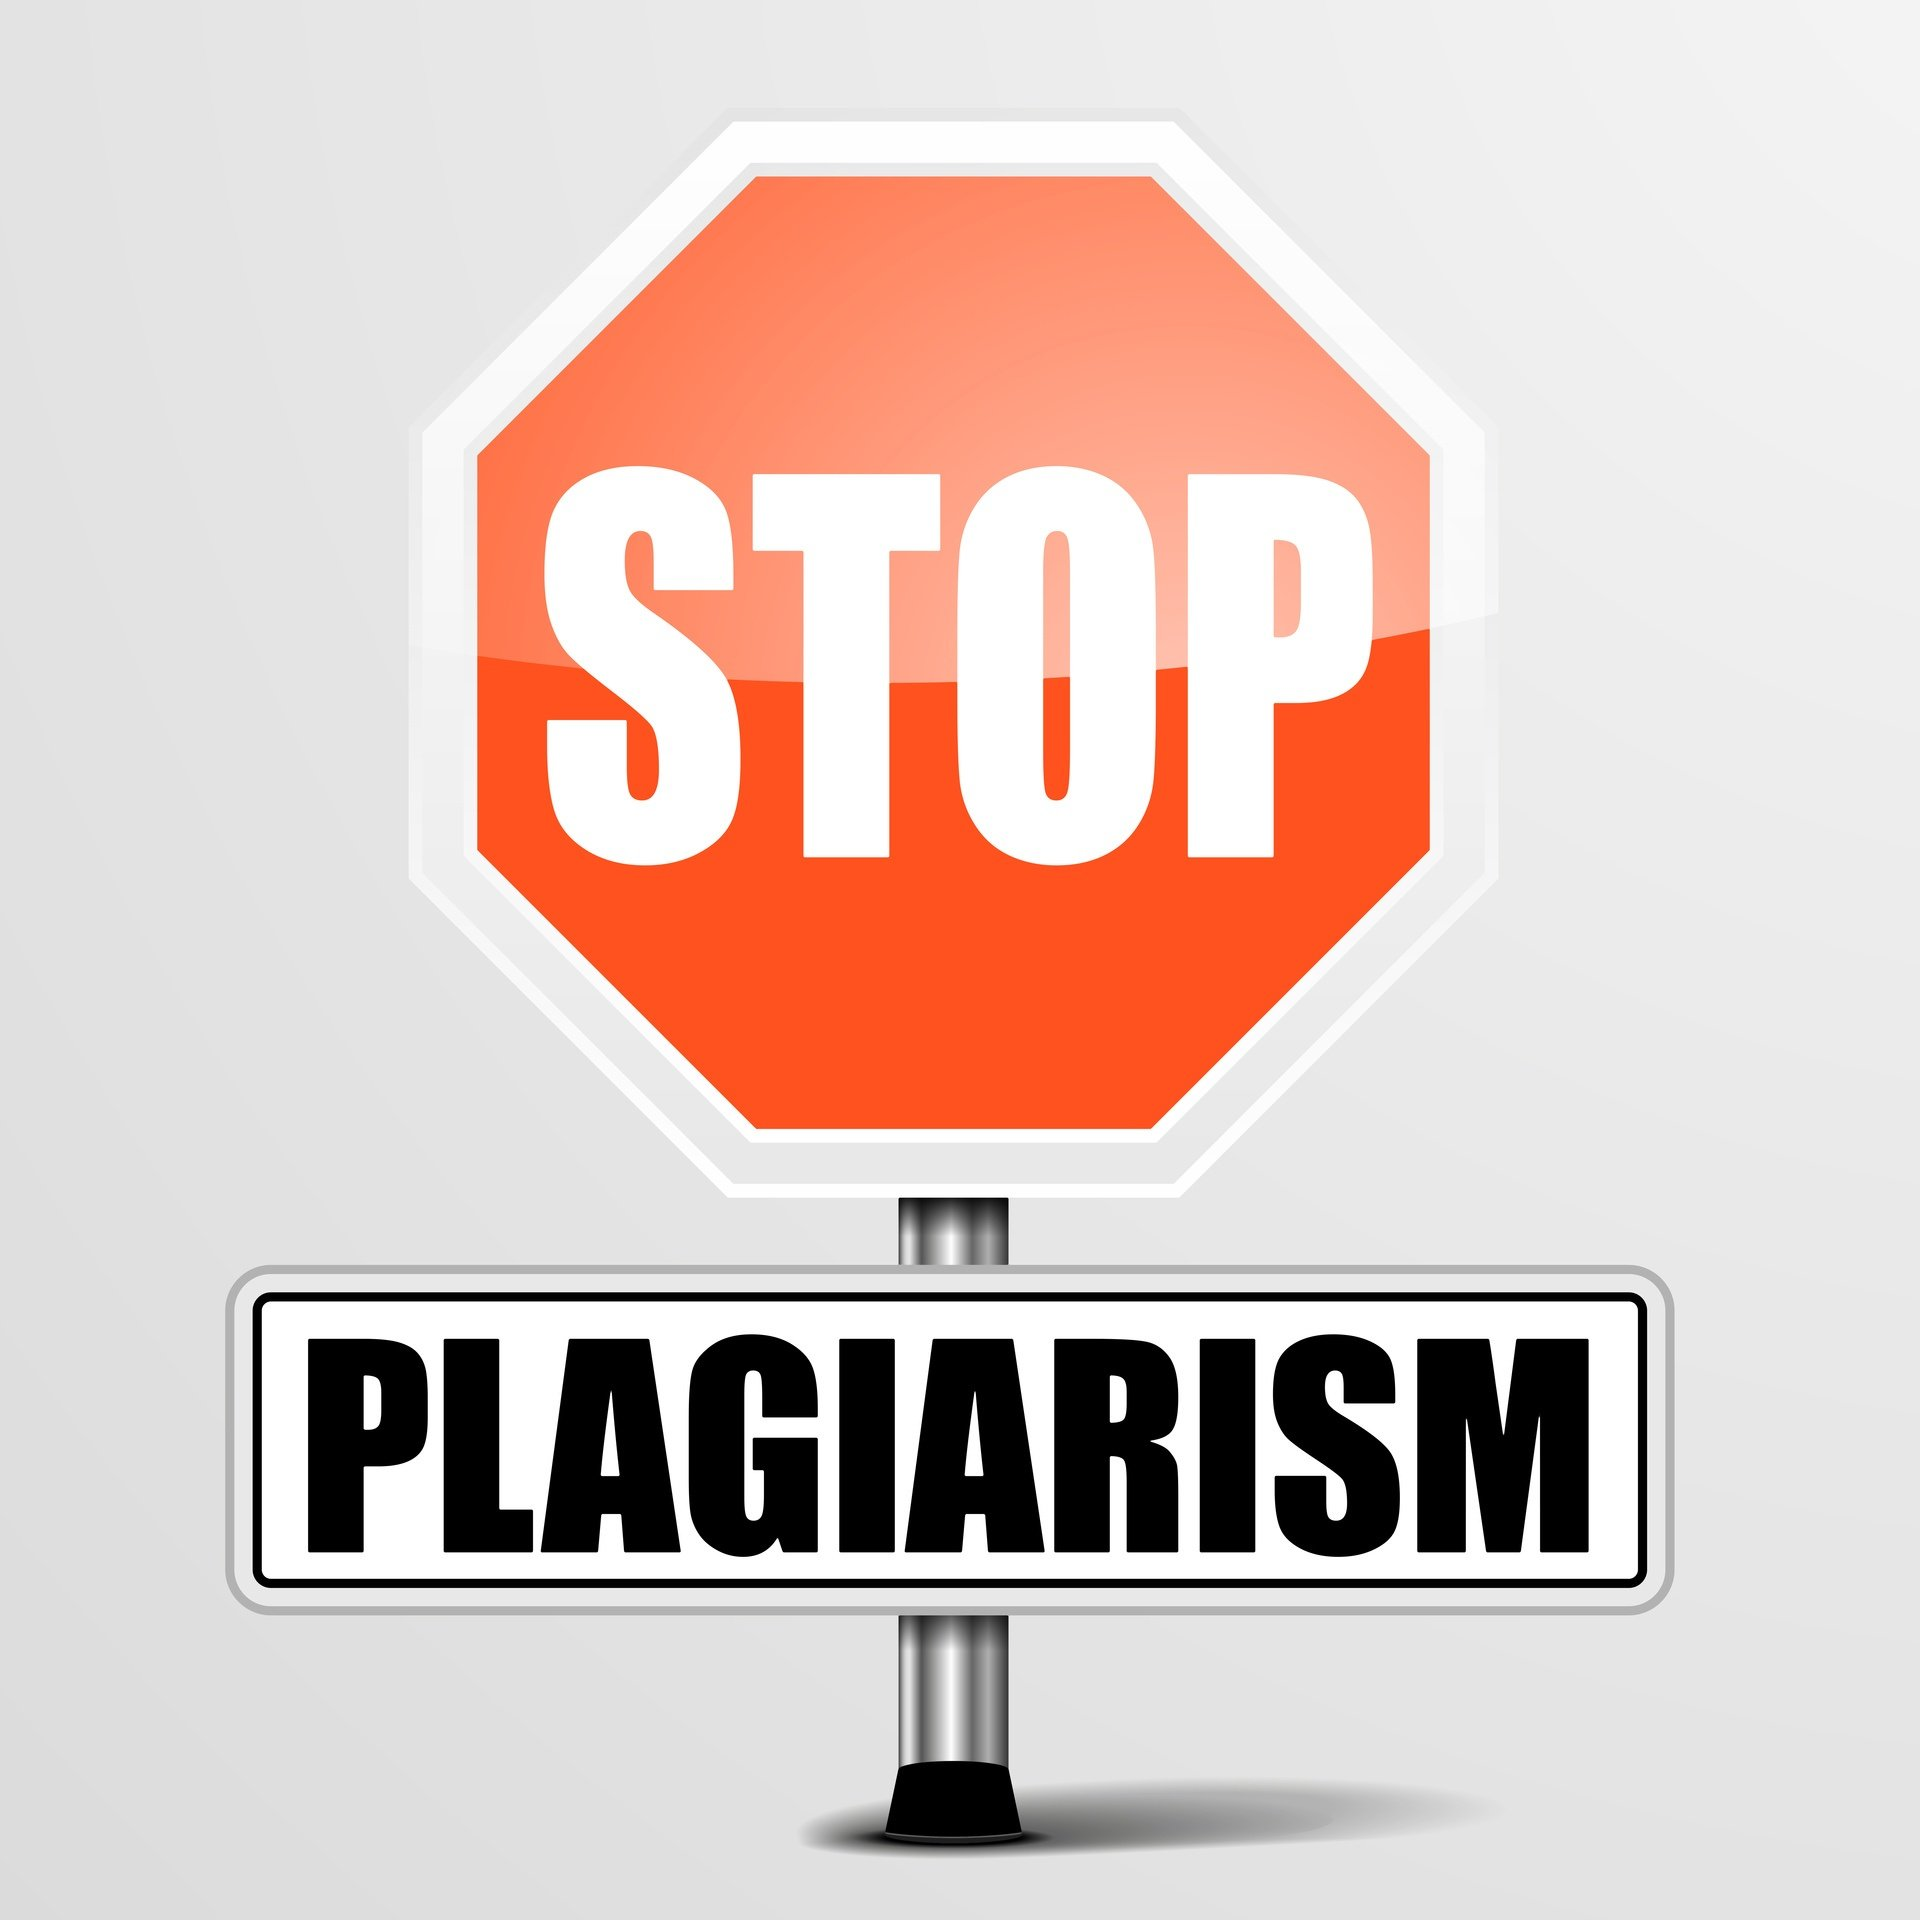 college essay plagiarism plagiarism cheating and craigslist the  how do instructors check for plagiarism plagiarism checker multilingual plagiarism check inside higher ed plagiarism checker